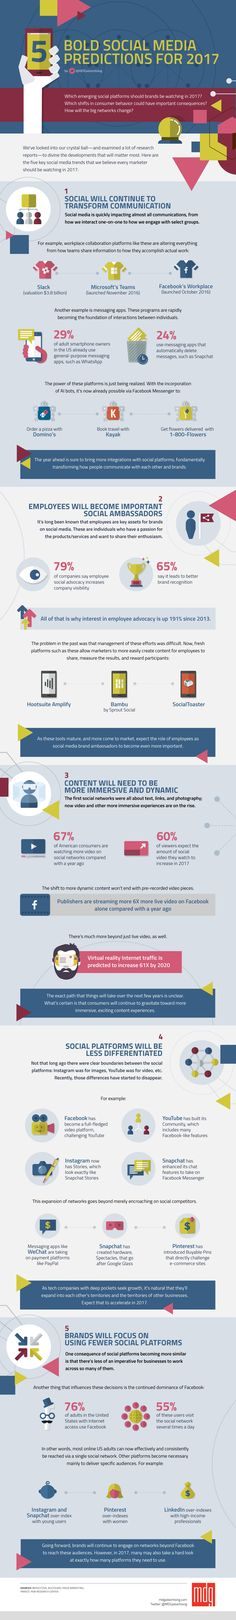 Social Media Predictions for 2017 [Infographic]